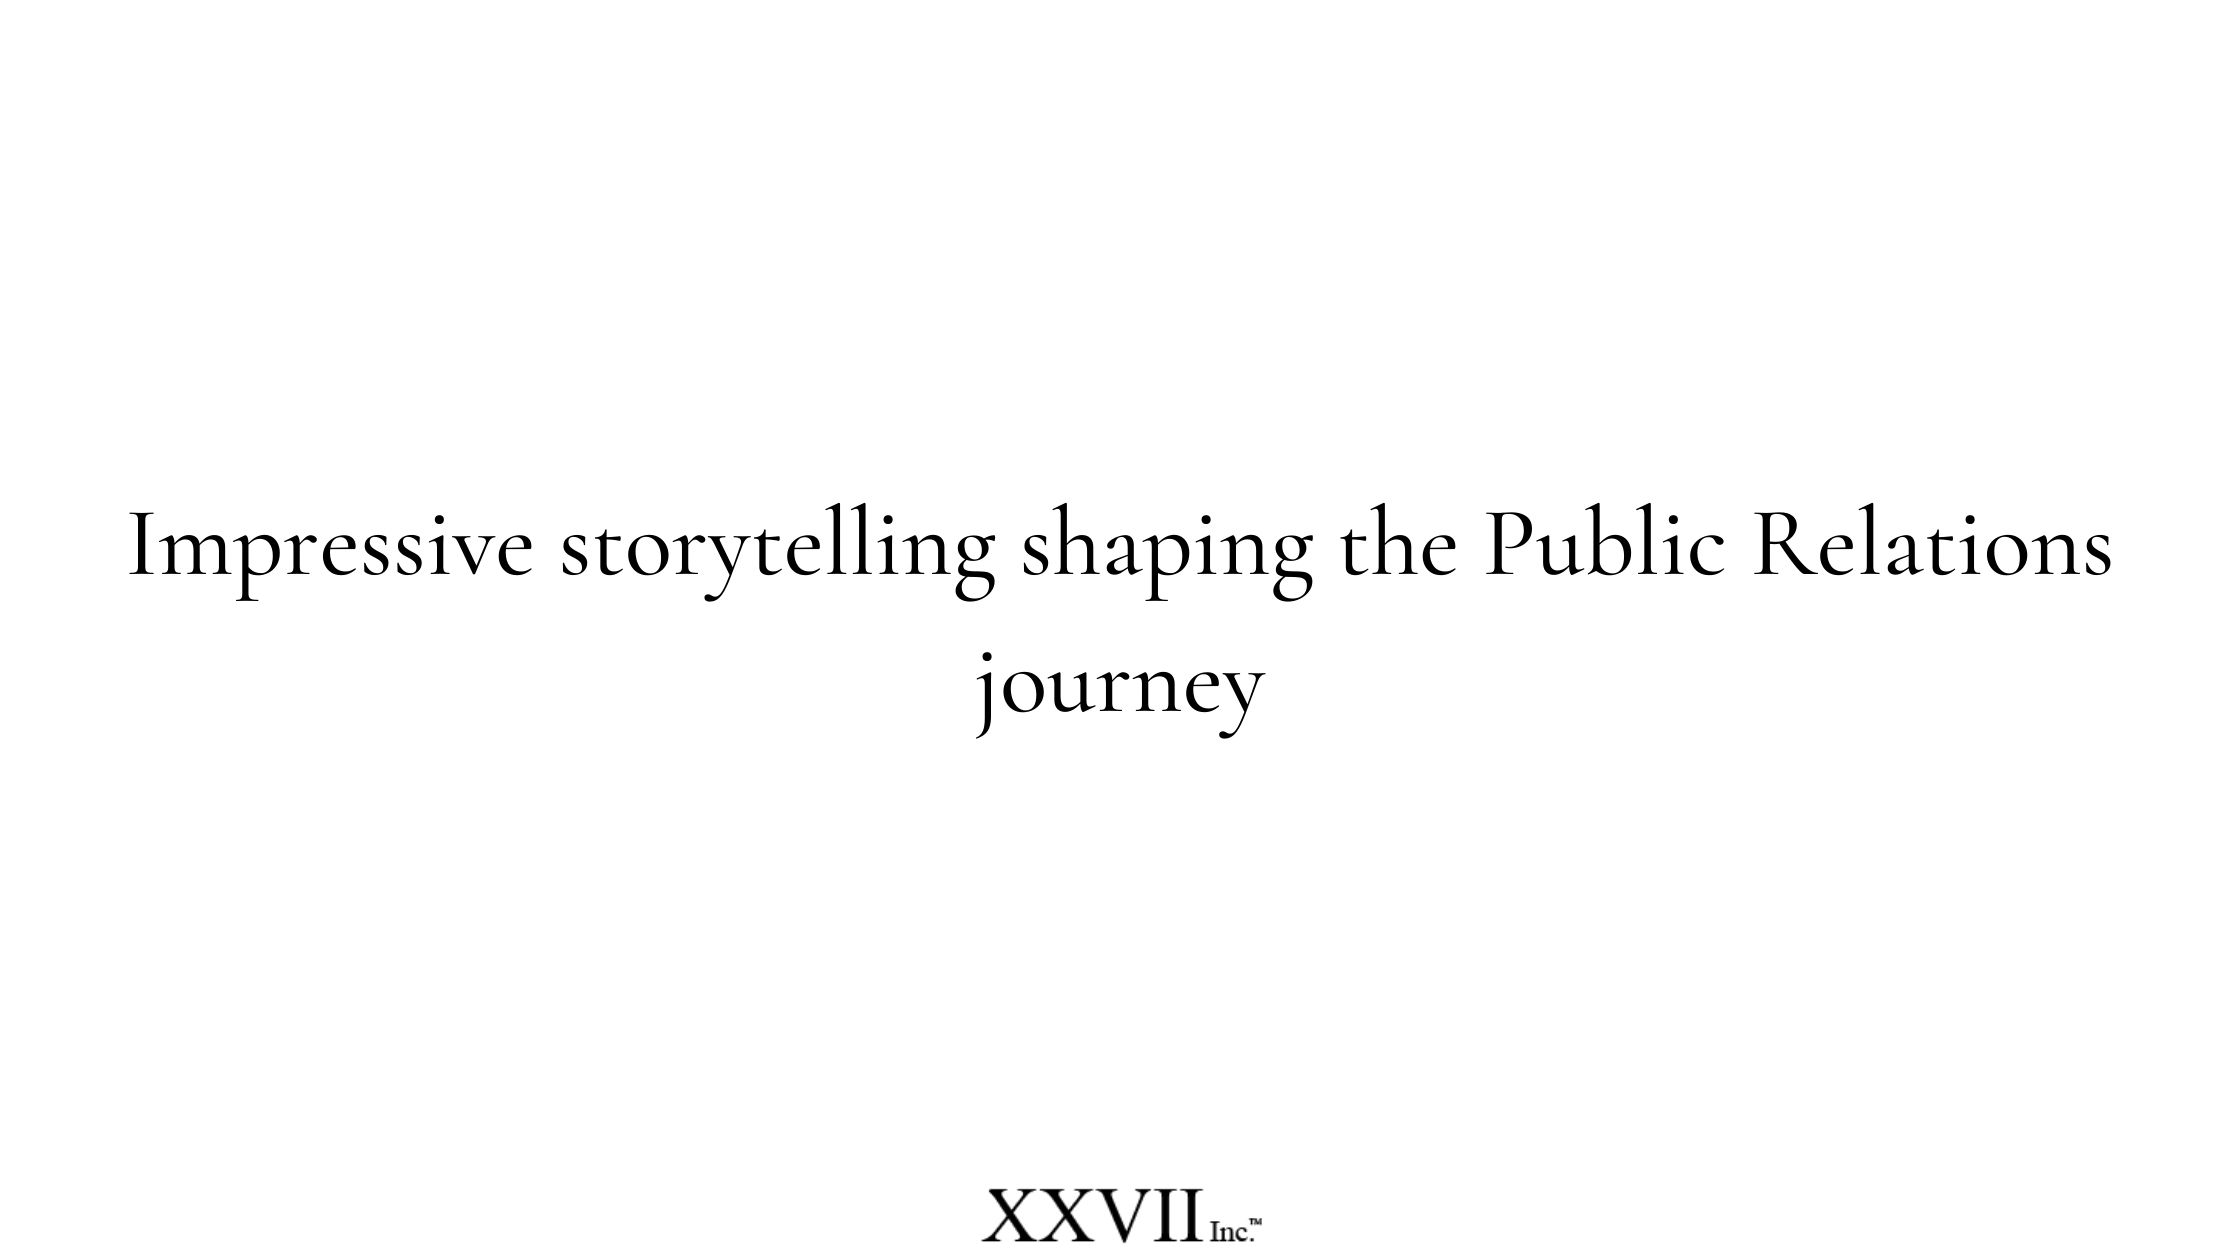 Impressive storytelling shaping the Public Relations journey